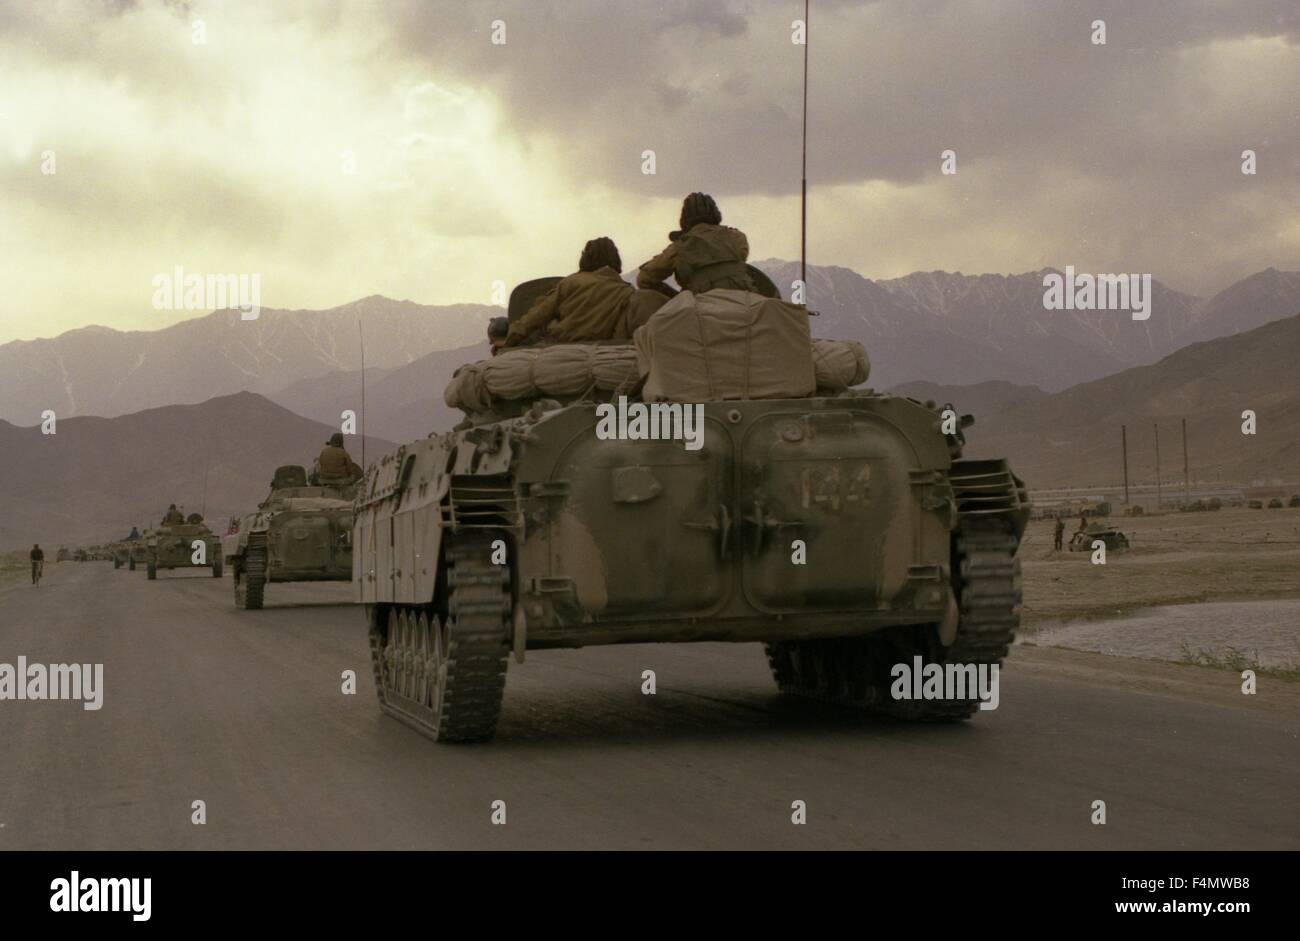 Soviet Afghanistan war - Page 6 Afghanistan-the-soviet-military-technics-on-road-to-kandahar-F4MWB8